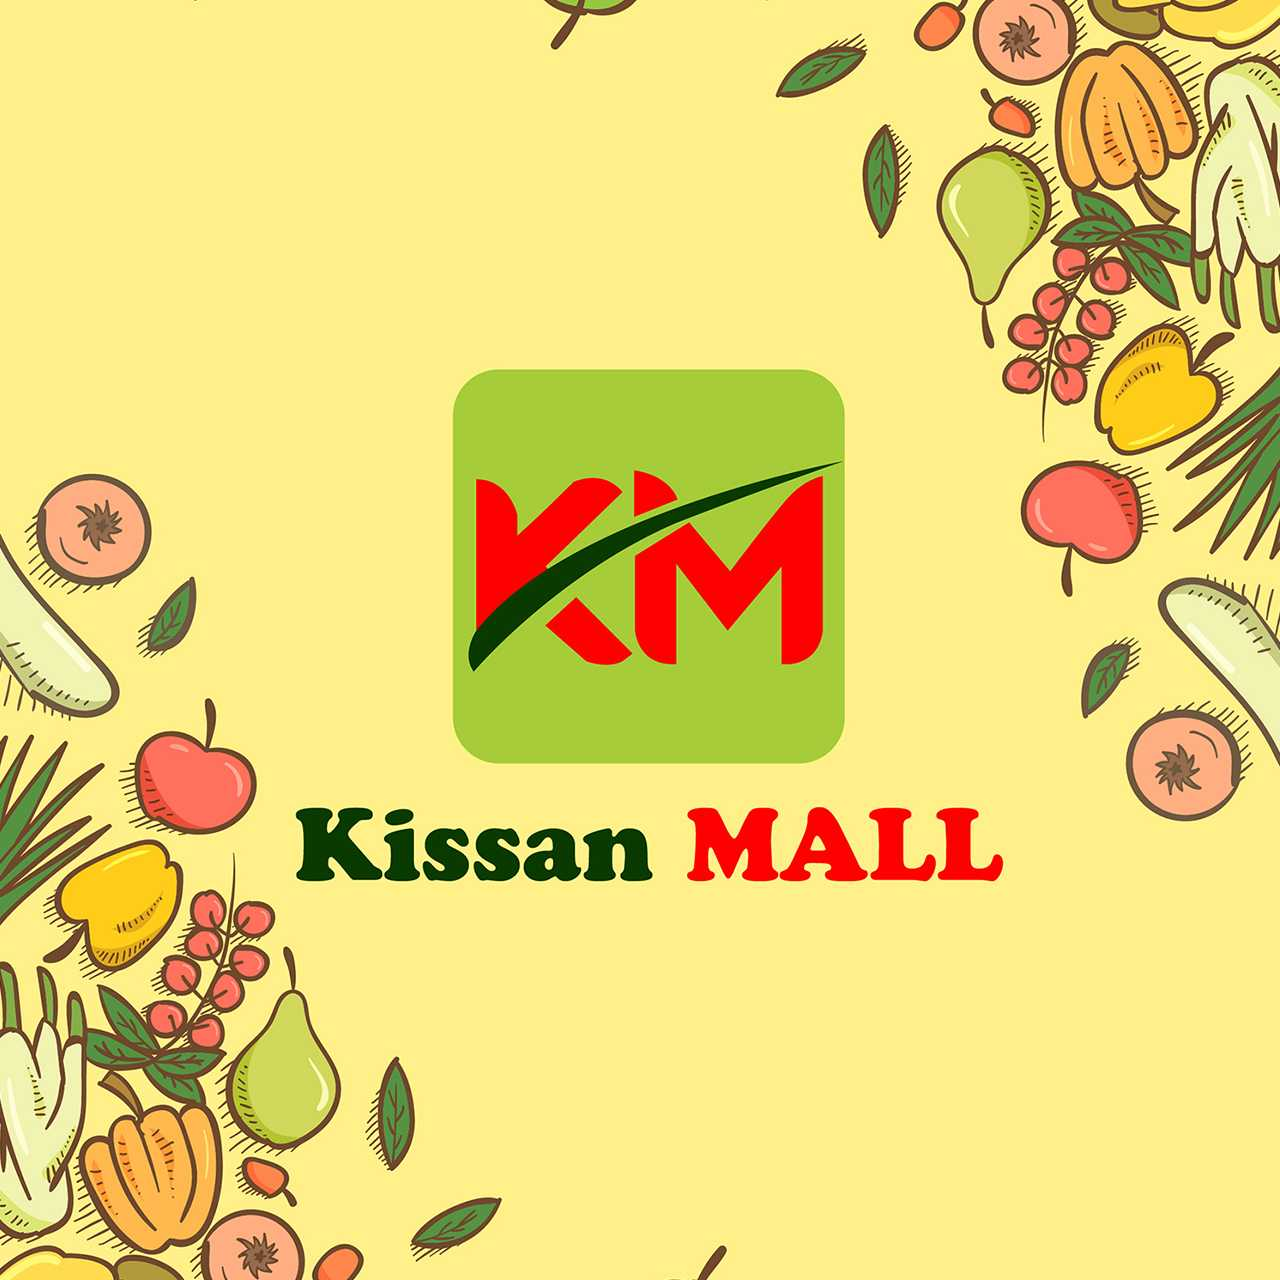 km-kissan-mall